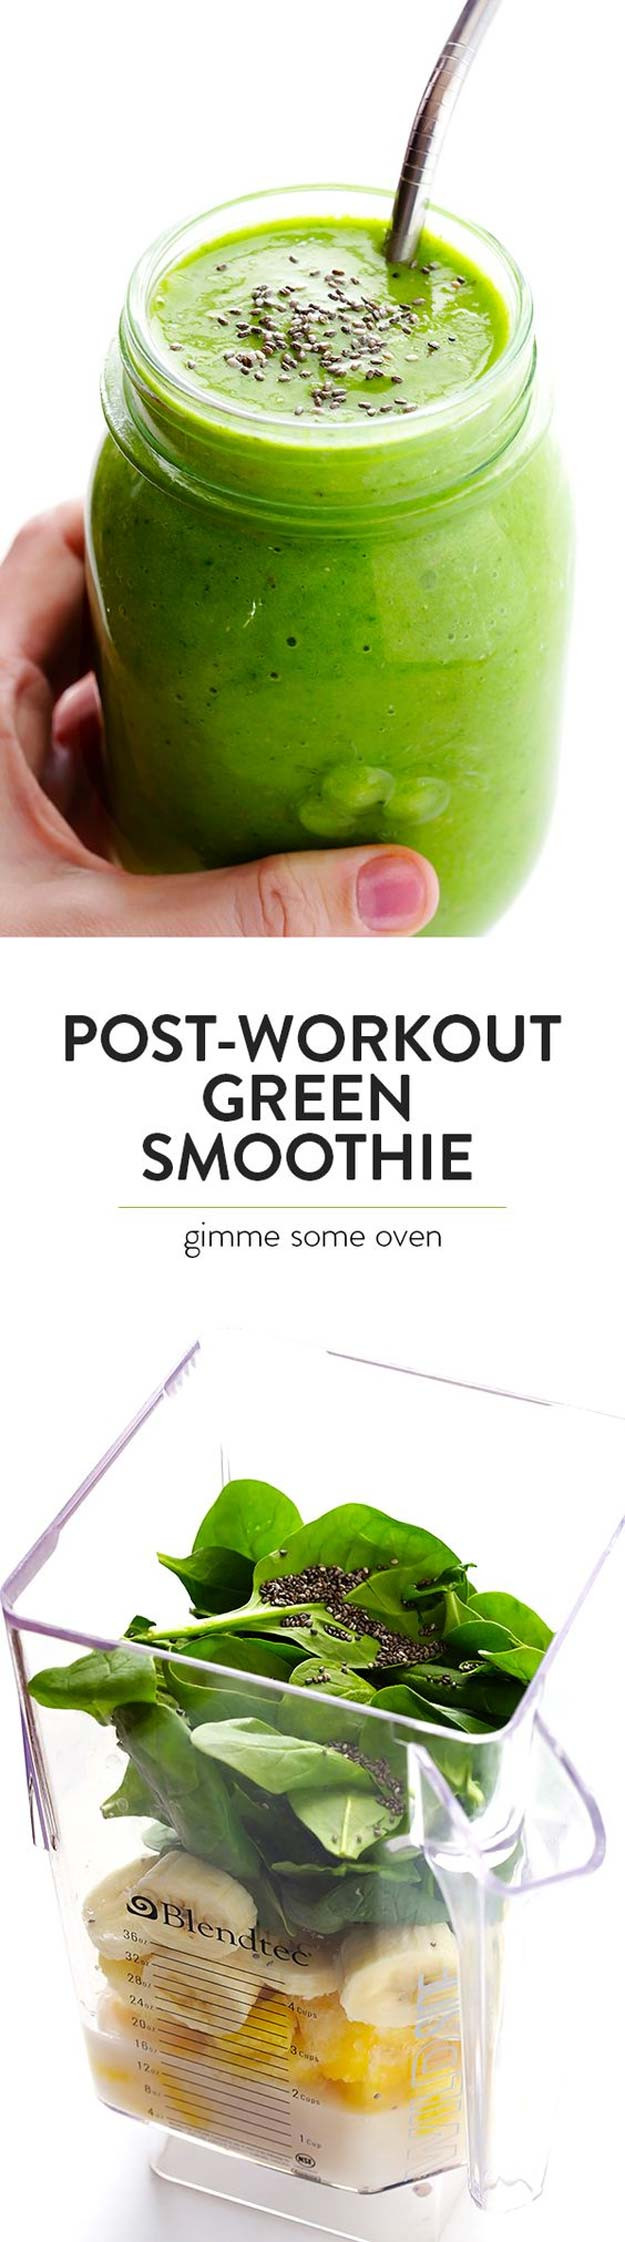 Healthy Smoothies After Workout  33 Healthy Smoothie Recipes The Goddess